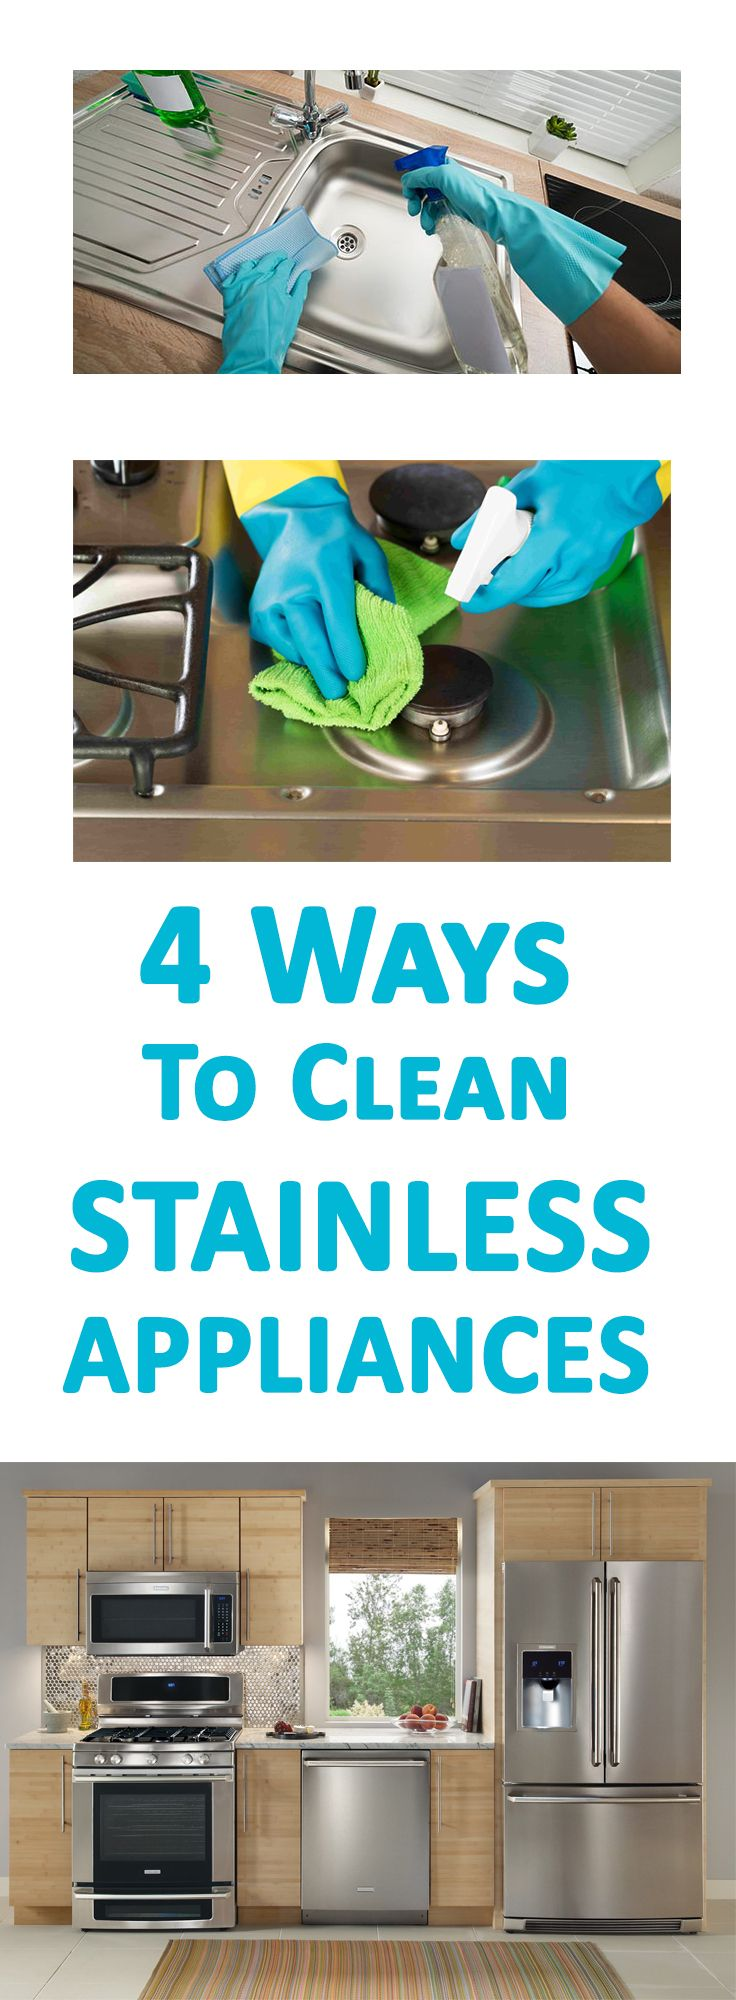 4 Ways To Clean Stainless Appliances